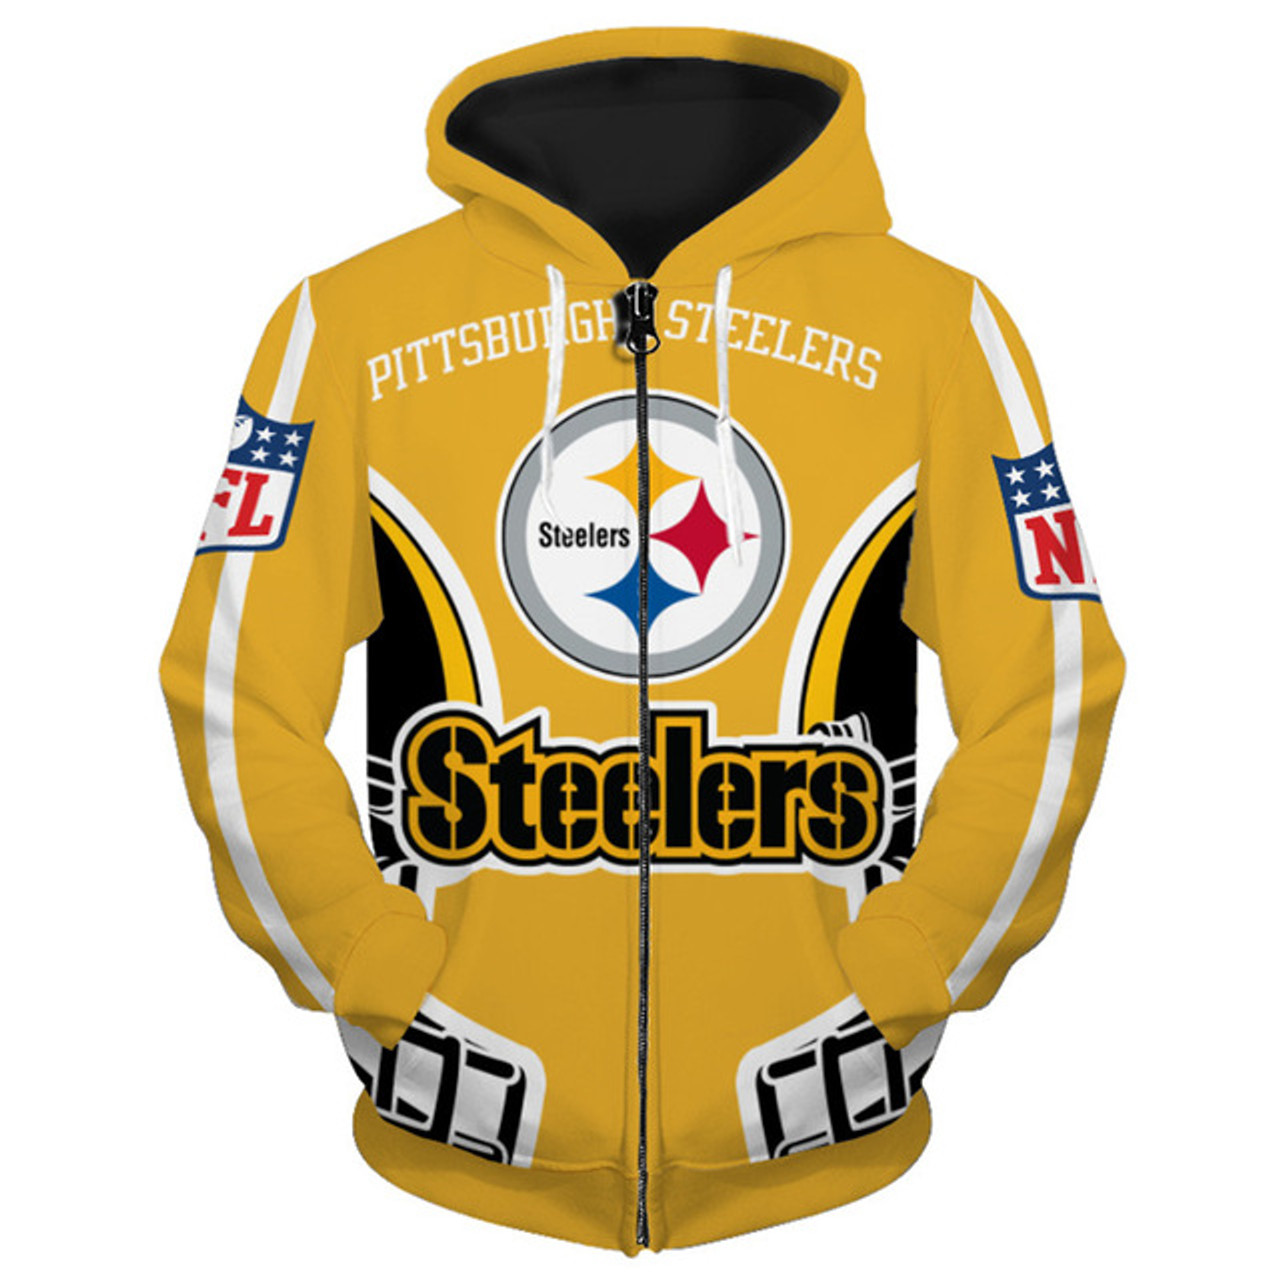 official photos ff7e6 e94ed **(NEW-OFFICIALLY-LICENSED-N.F.L.  PITTSBURGH-STEELERS-NATION/OFFICIAL-TEAM-ZIPPERED-HOODIES/NICE-CUSTOM-DETAILED-3D-GRAPHIC-PRINTED/PREMIUM-WARM-FLEEC...